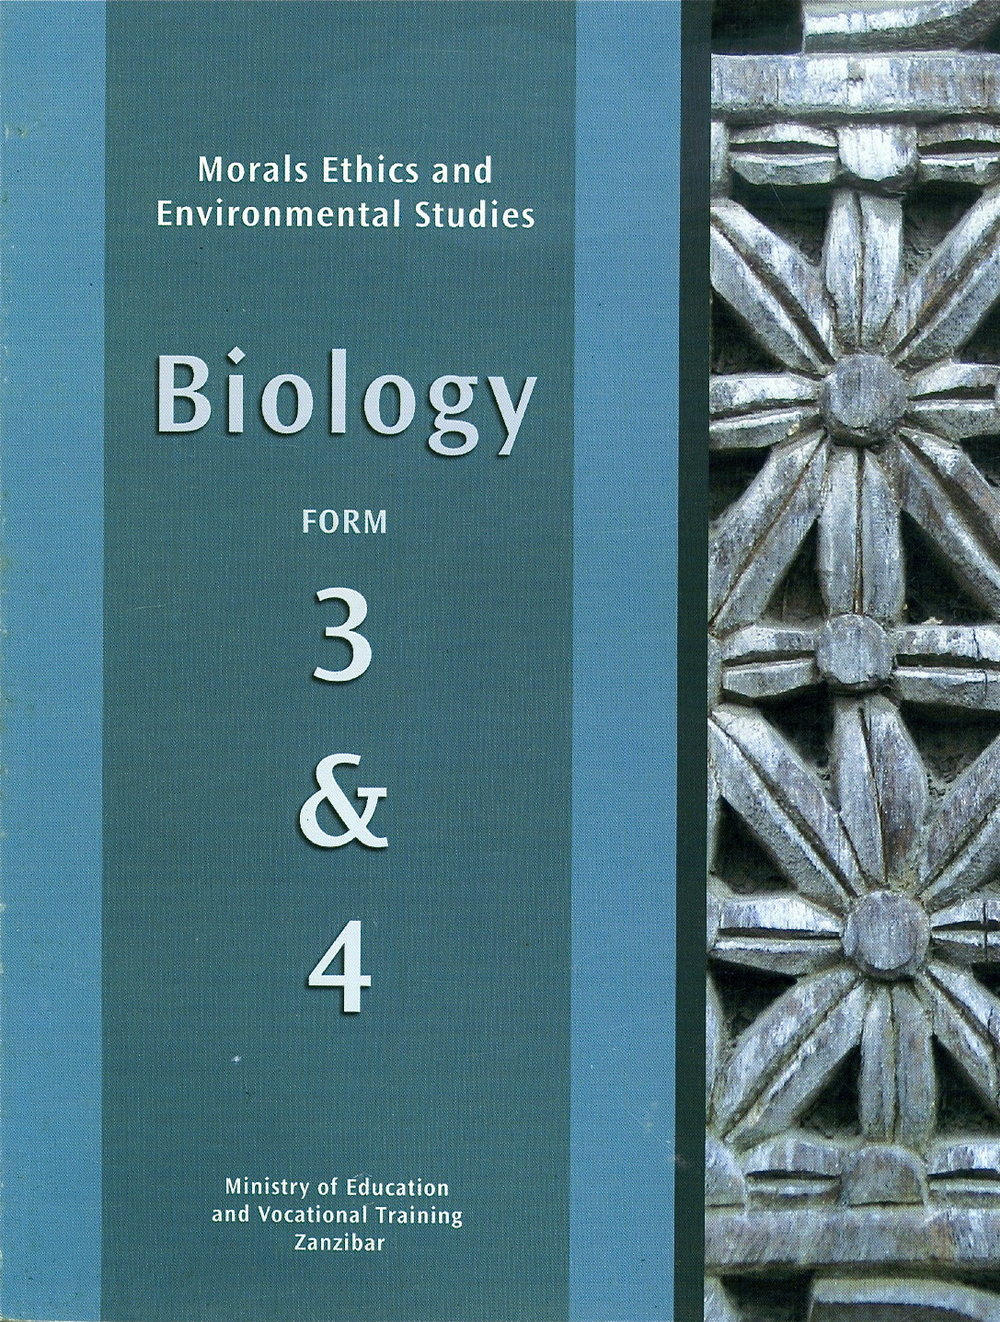 Biology Curriculum, Forms 3 & 4.  Author. (Ministry of Education, Zanzibar, 2007)